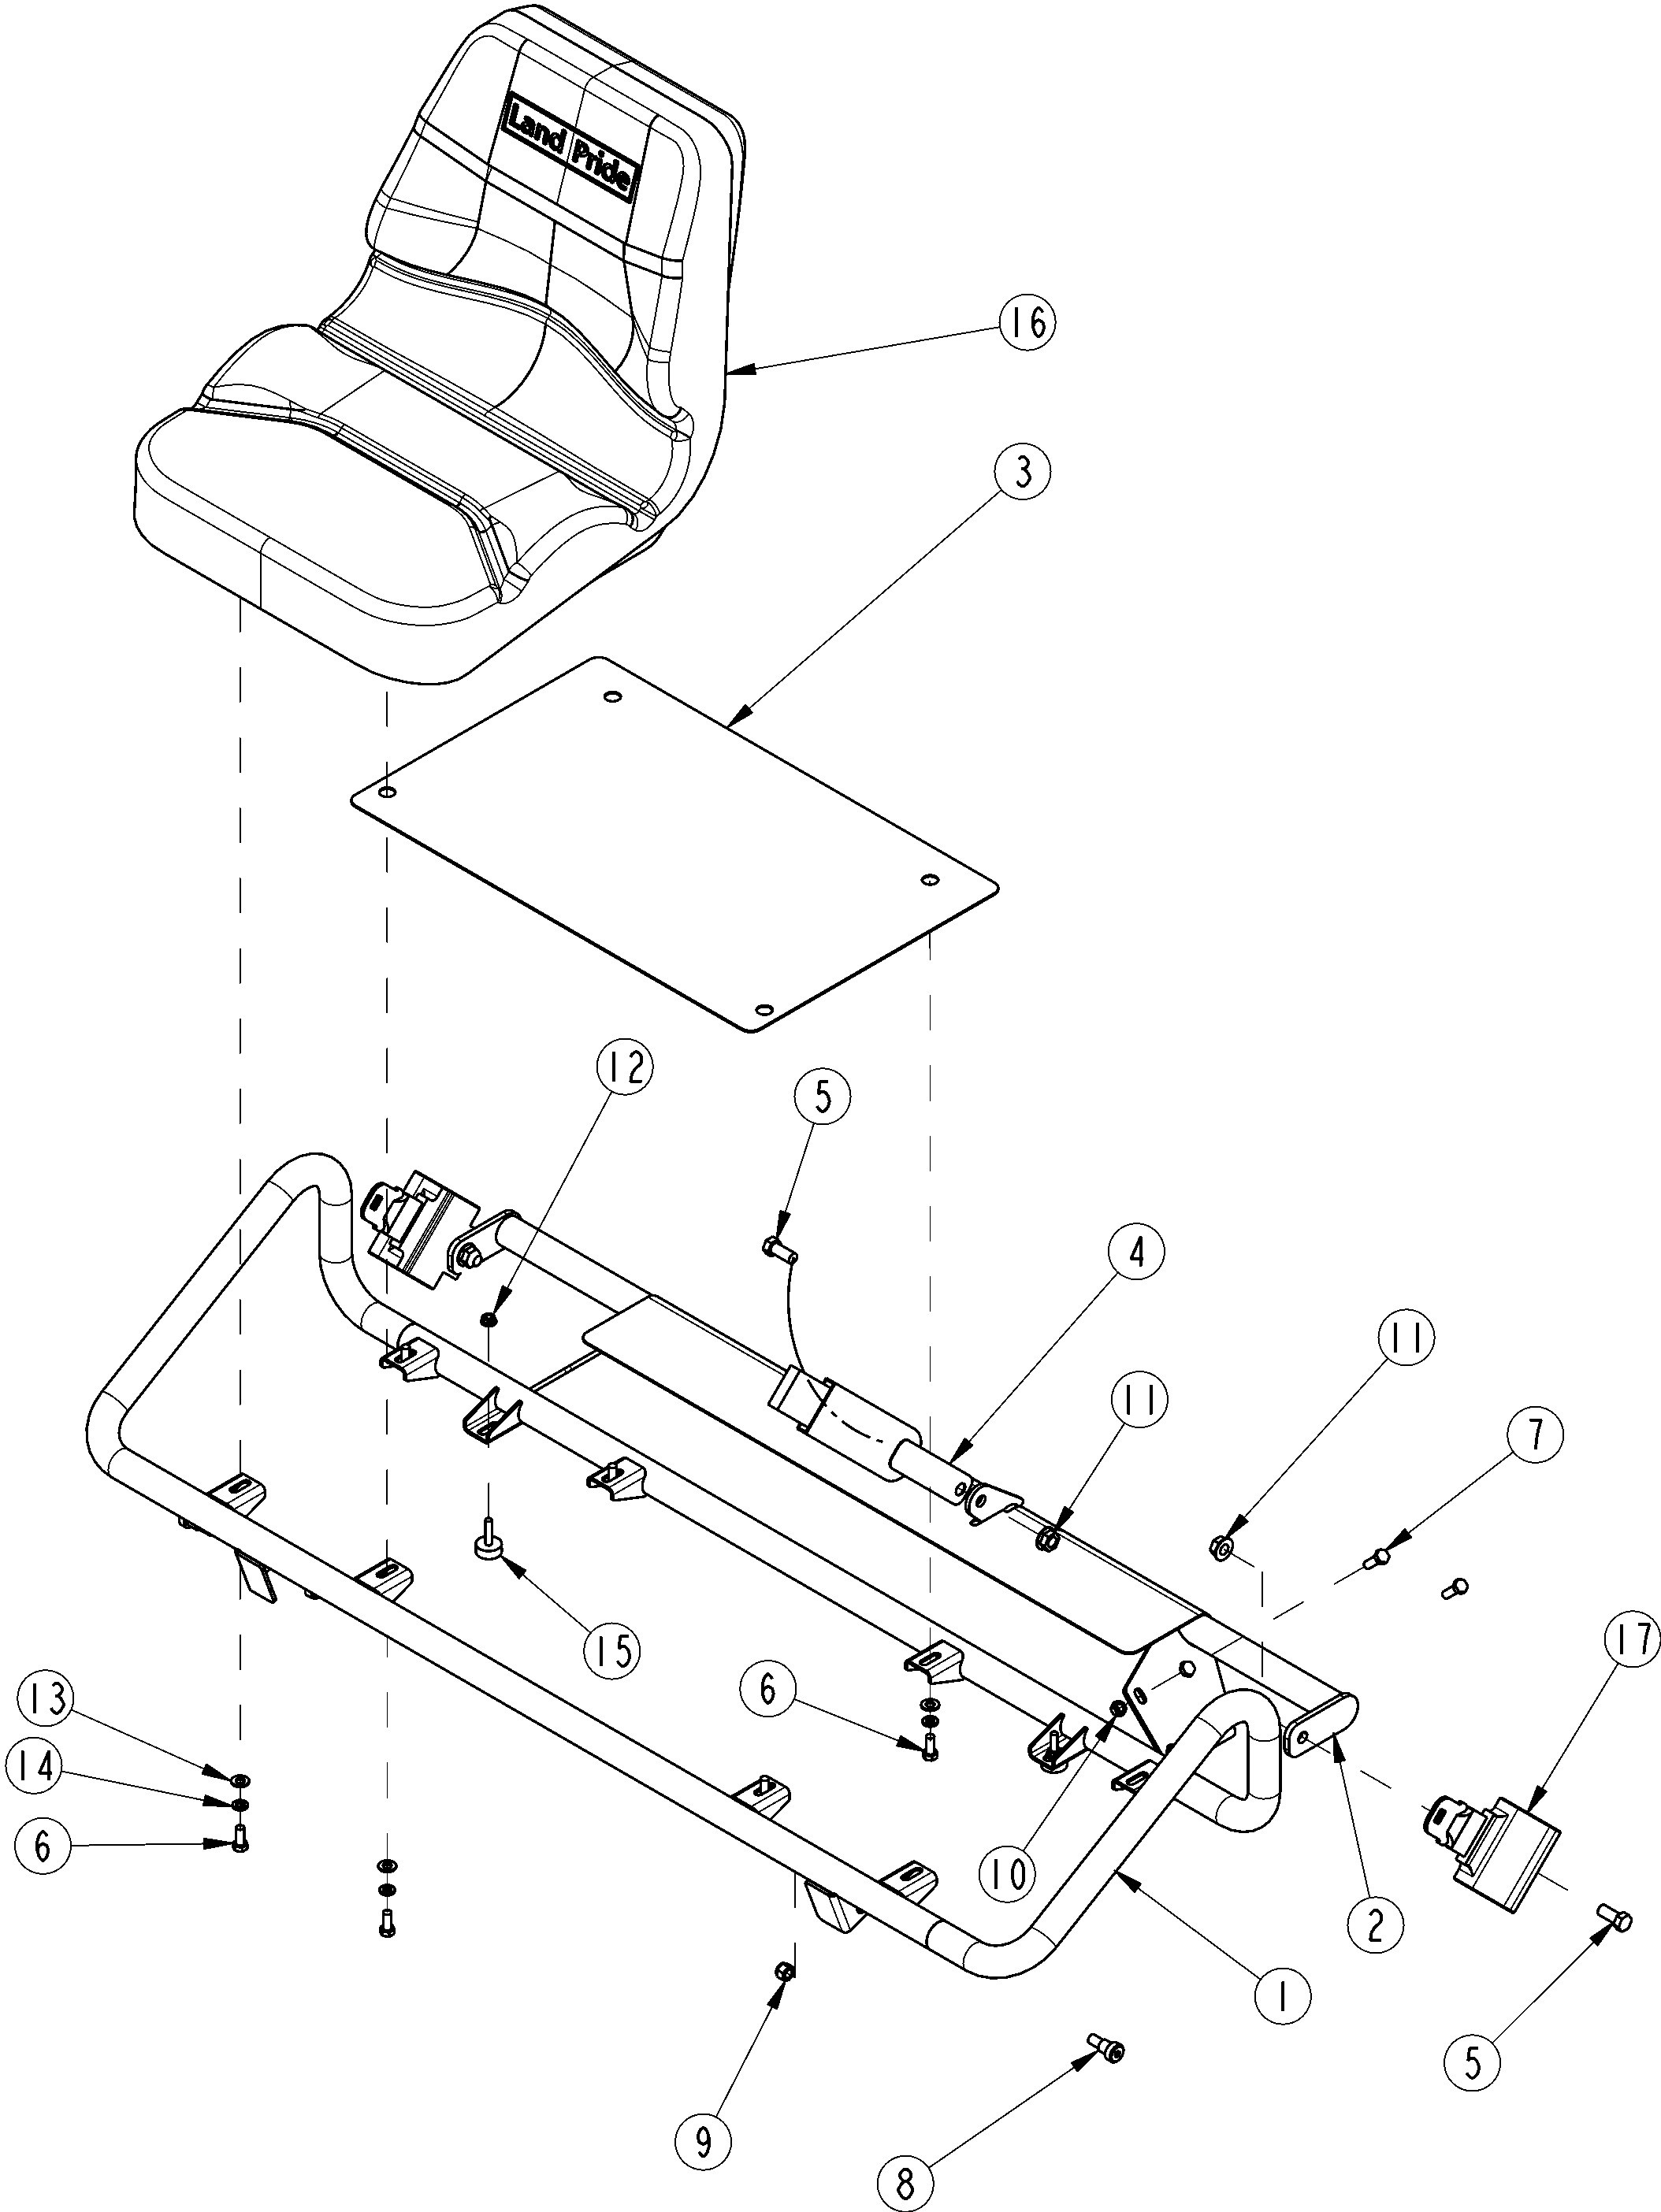 Seat Belt assembly Diagram Land Pride Treker 4410st Vehicle Bucket Seat Option assembly Parts Of Seat Belt assembly Diagram